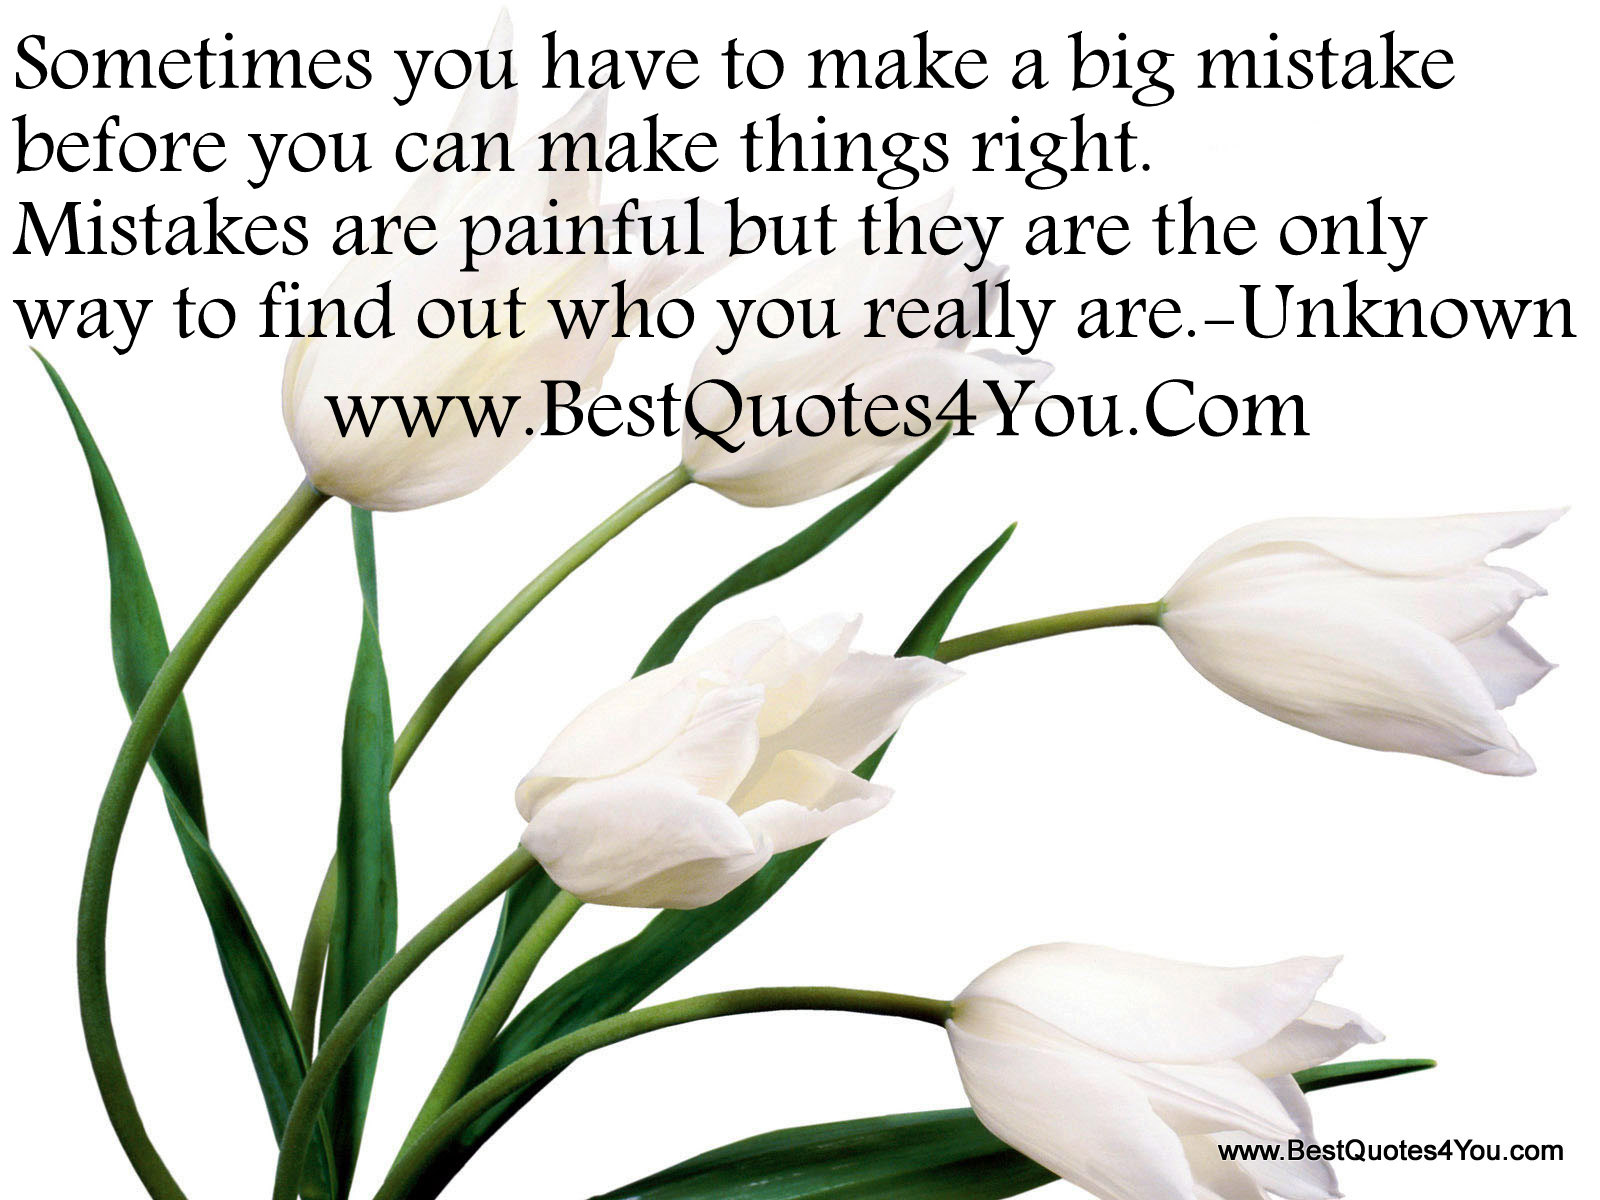 Sometimes You Have To Make A Big Mistake Before You Can Things Right.  Mistakes